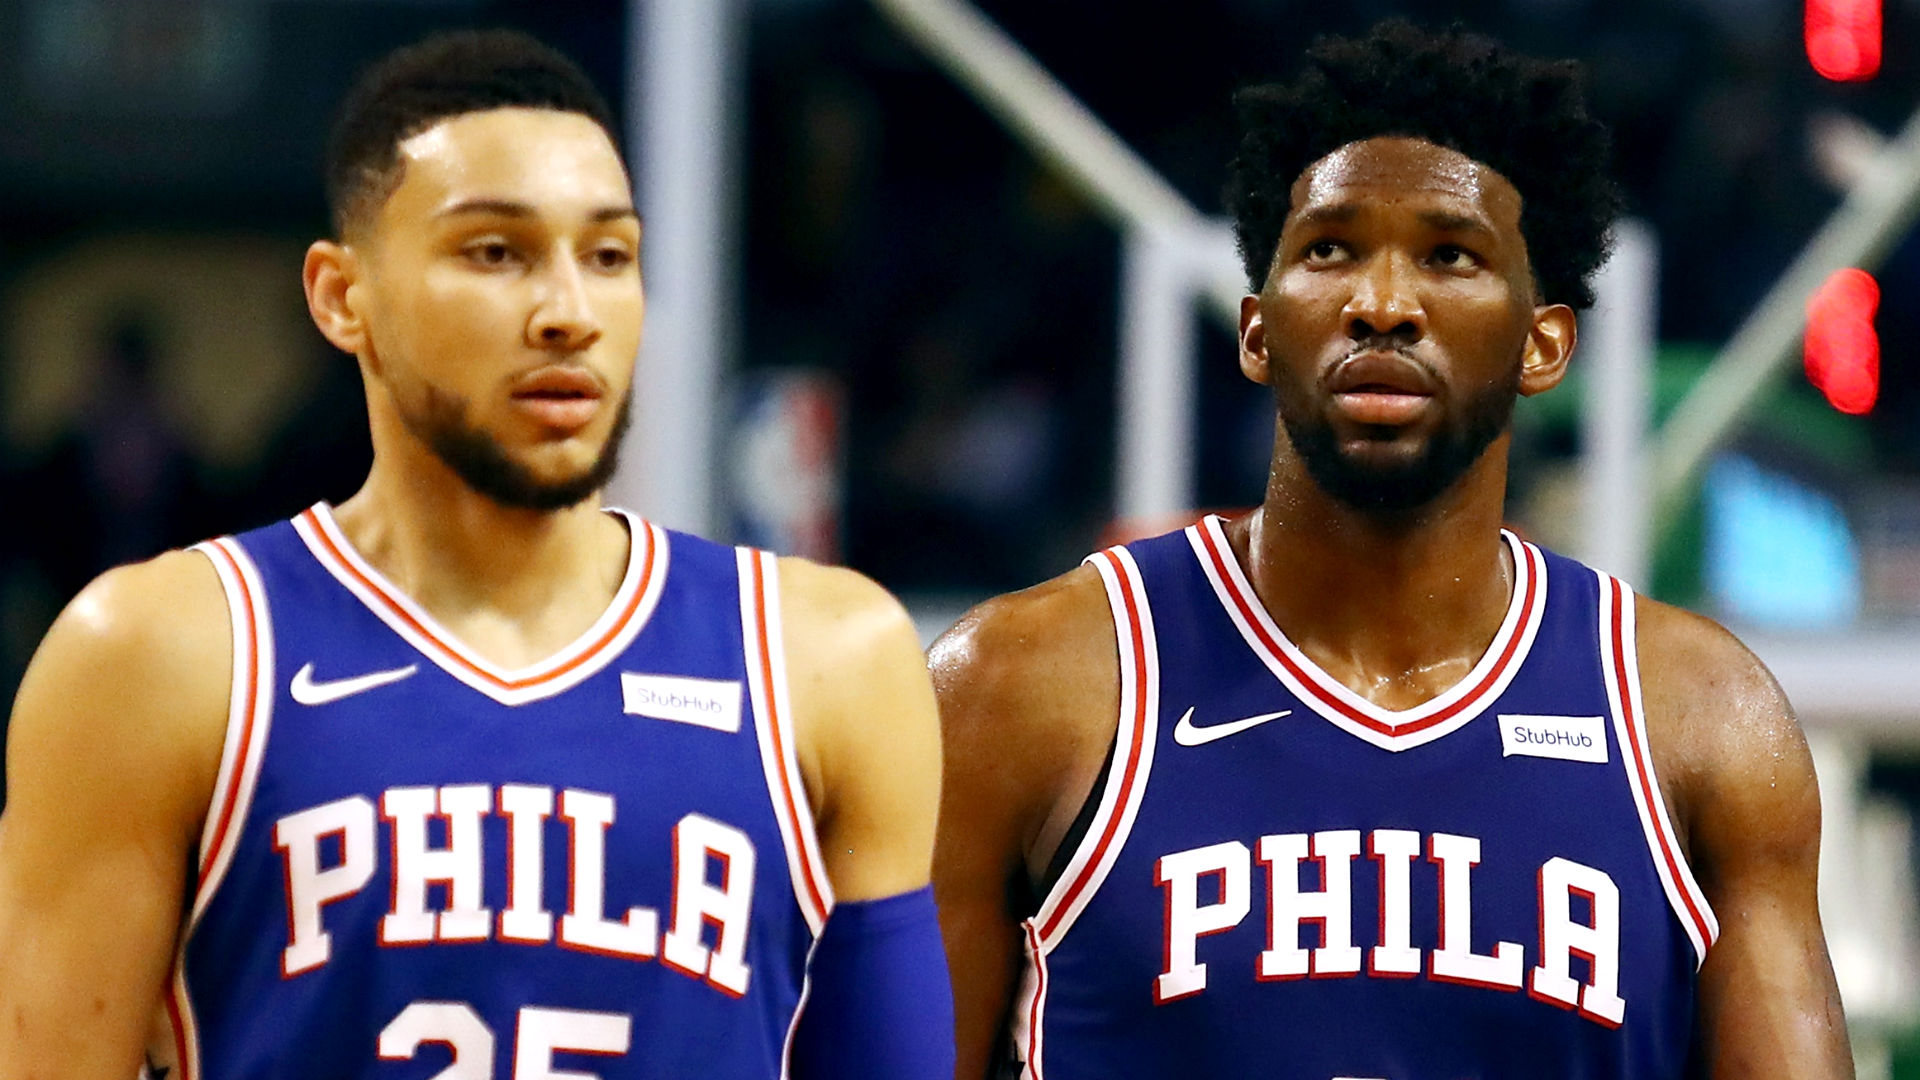 Nba Playoffs 2019 Joel Embiid Ben Simmons Sound Off On